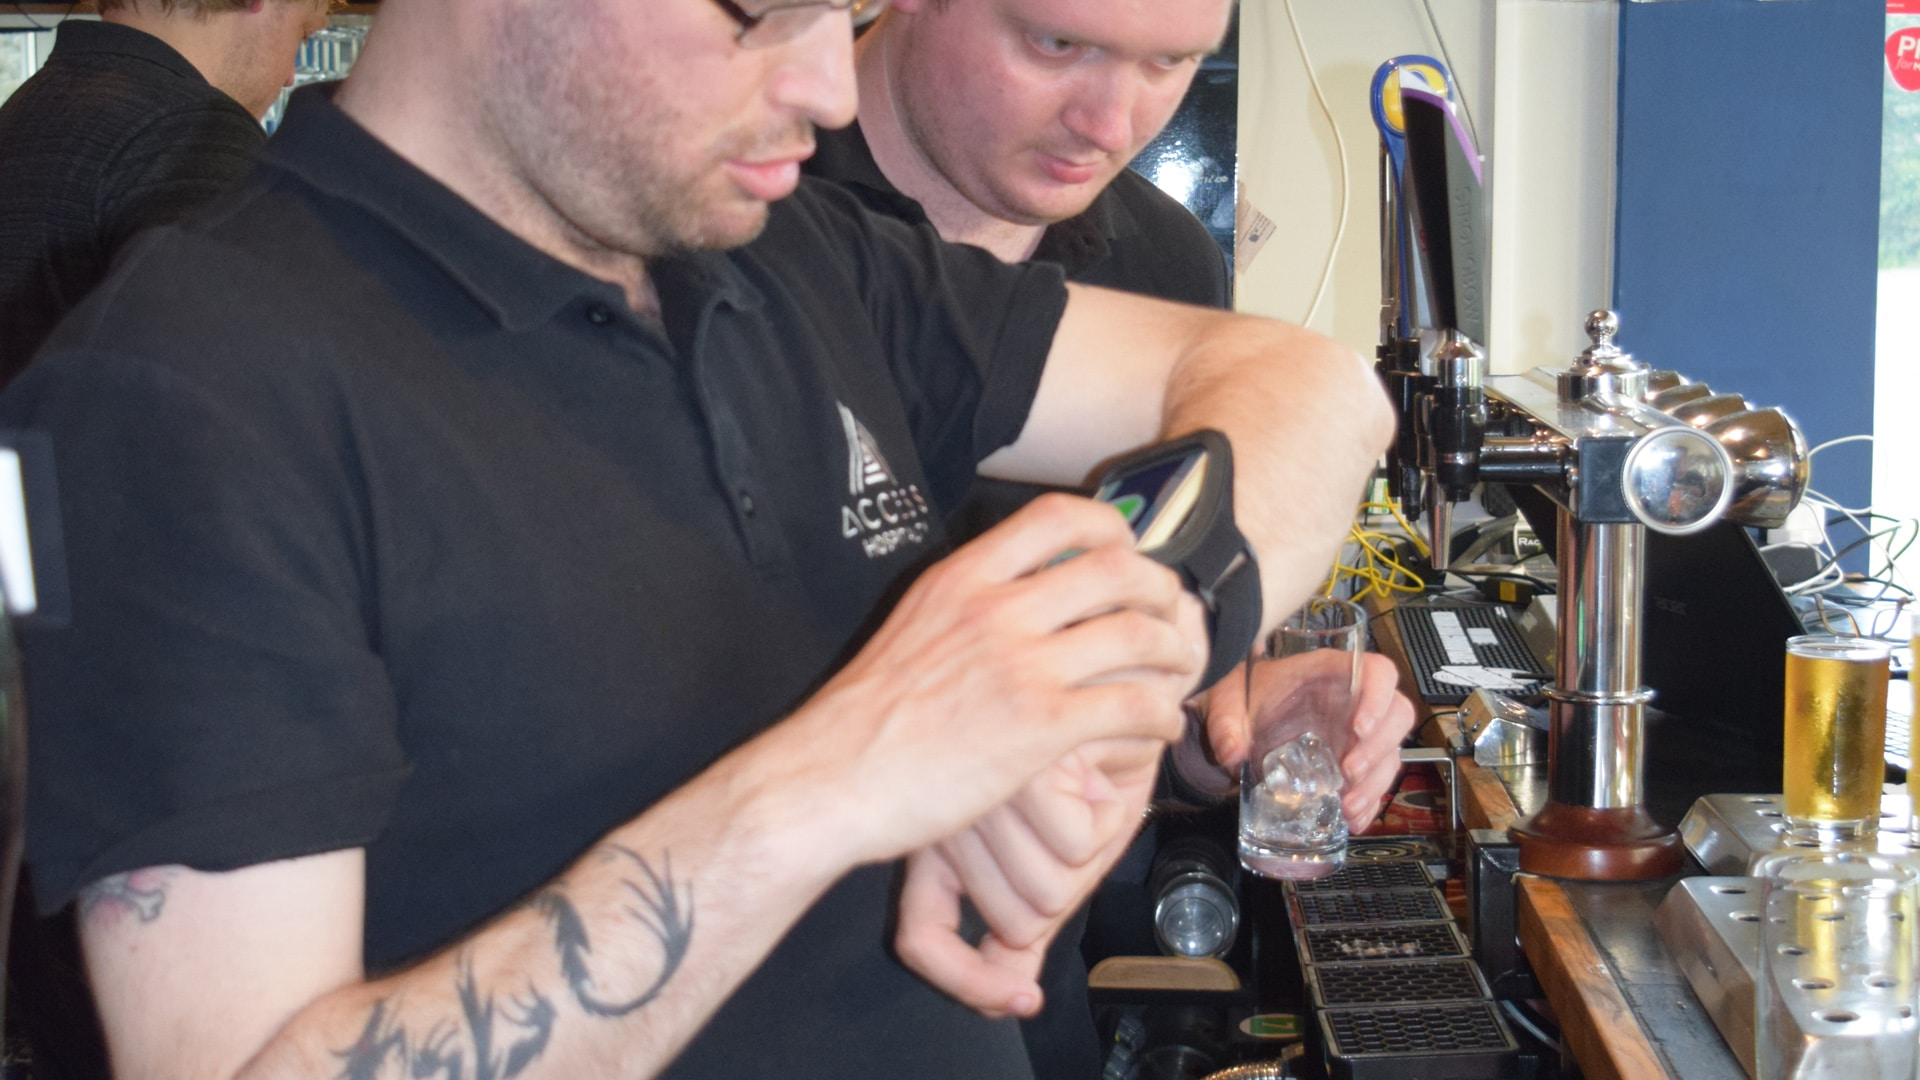 Magpies members behind a bar using smart devices around their wrists